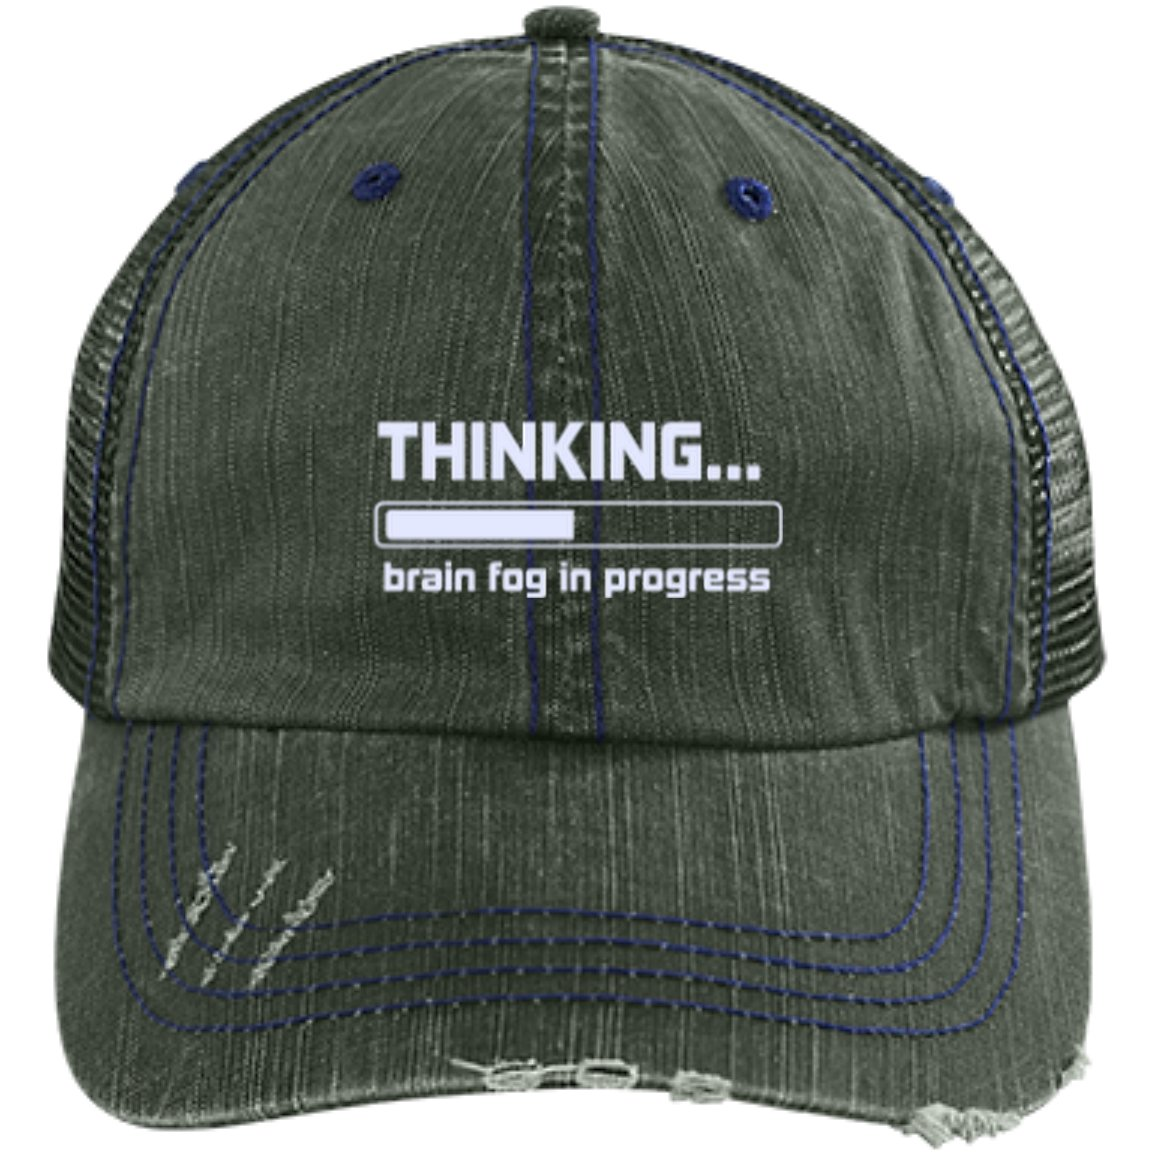 Brain Fog in Progress Trucker Cap - The Unchargeables